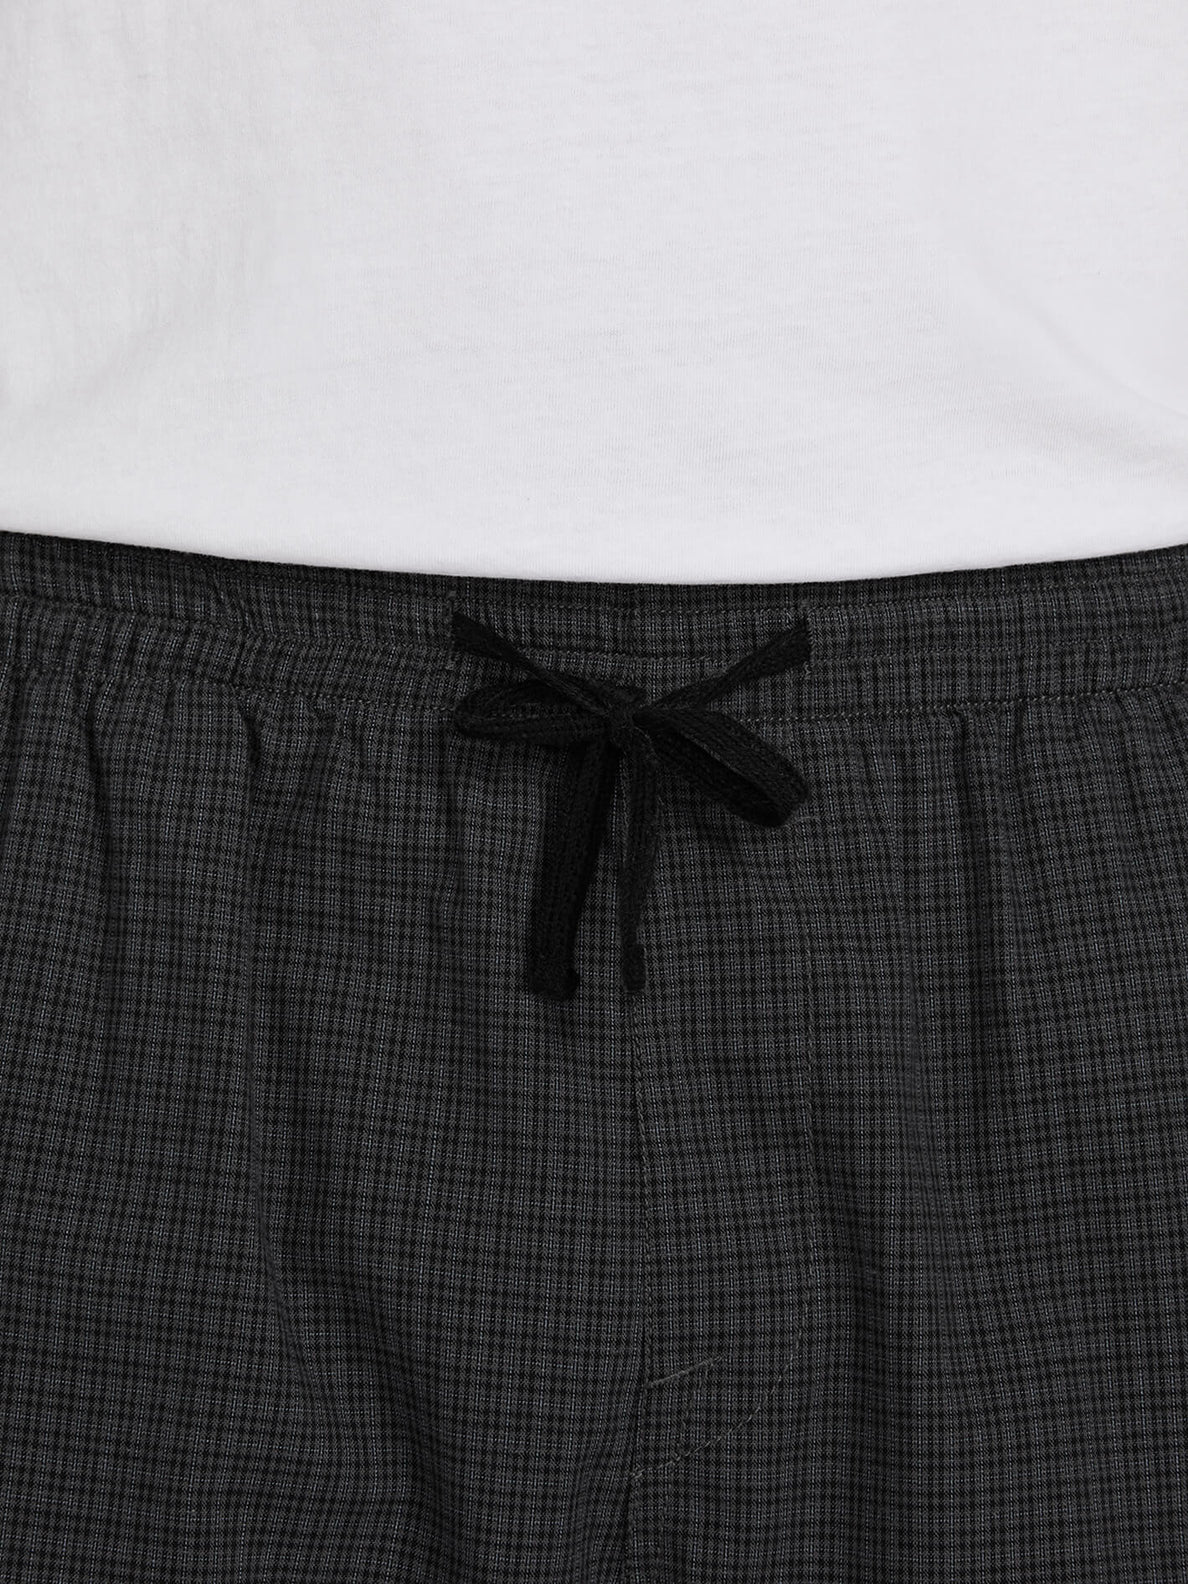 LOOSIE THRIFTER PANT (A1212000_DCR) [4]